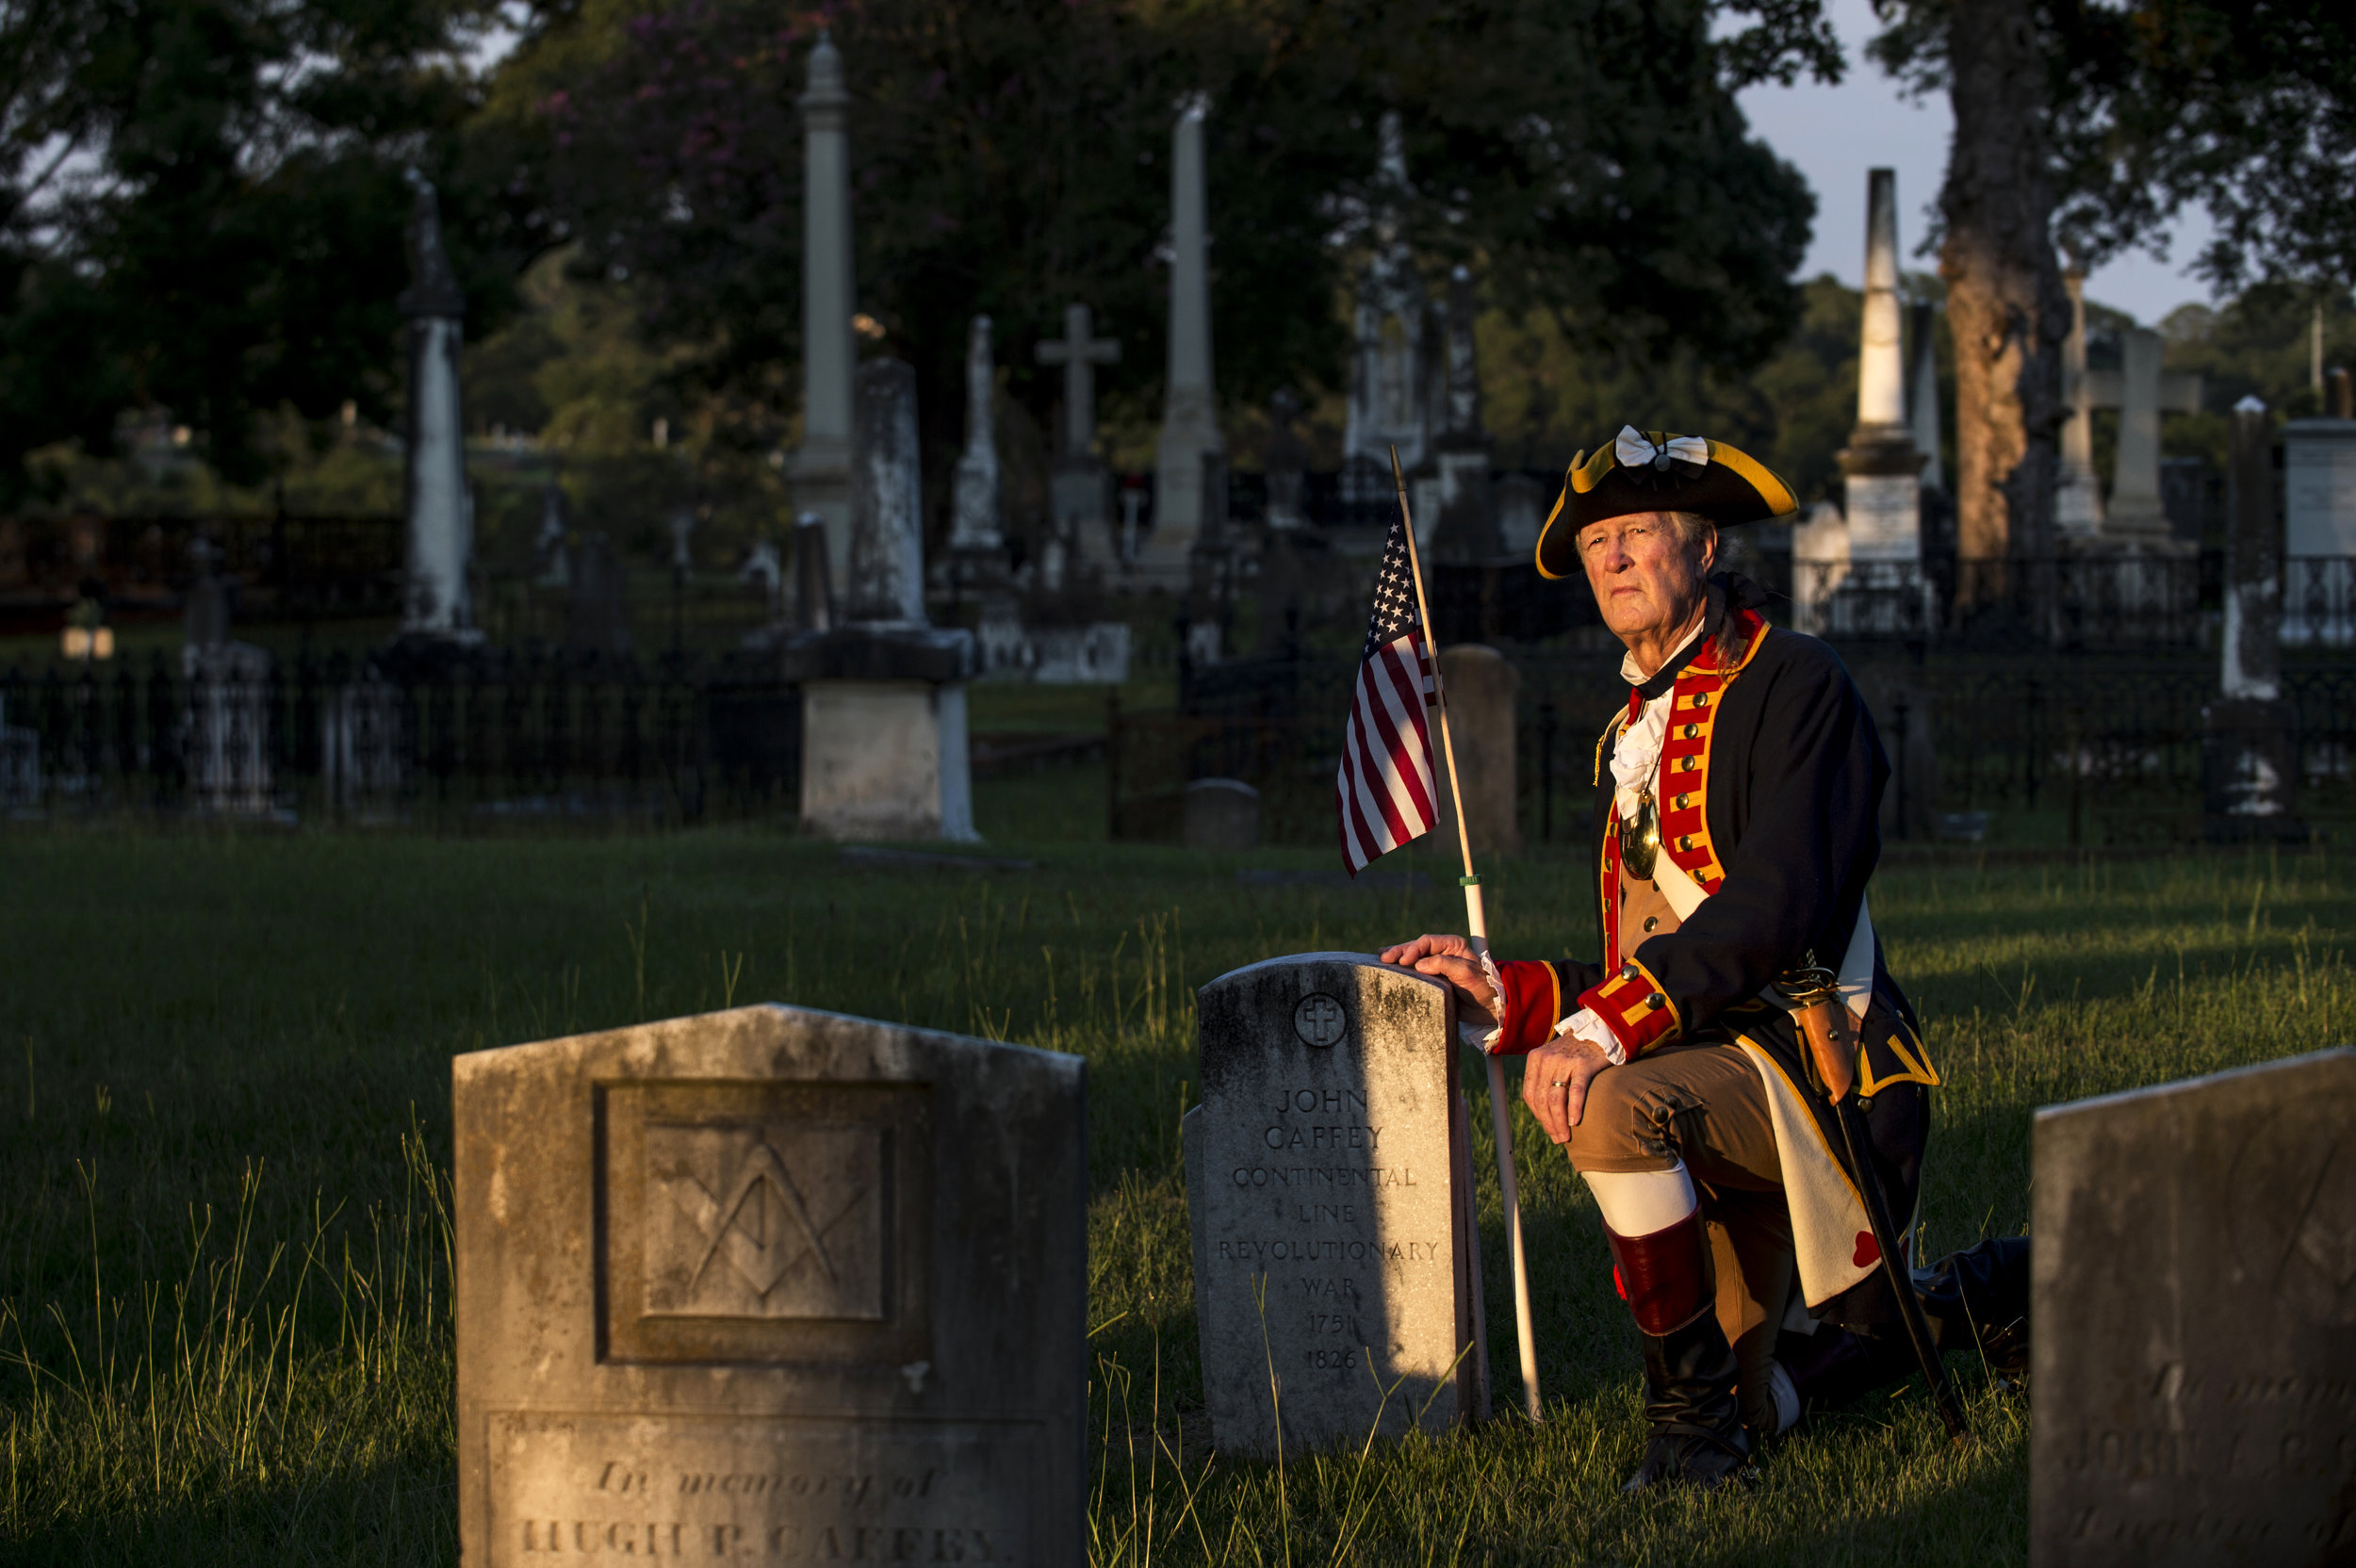 Larry Cornwell poses for a portrait next to the grave of John Caffey, who fought in the Revolutionary War, at Oakwood Cemetery in Montgomery, Ala. Cornwell is the Genealogist General for the Sons of the American Revolution, and has located six graves of Revolutionary War patriots buried in Montgomery.